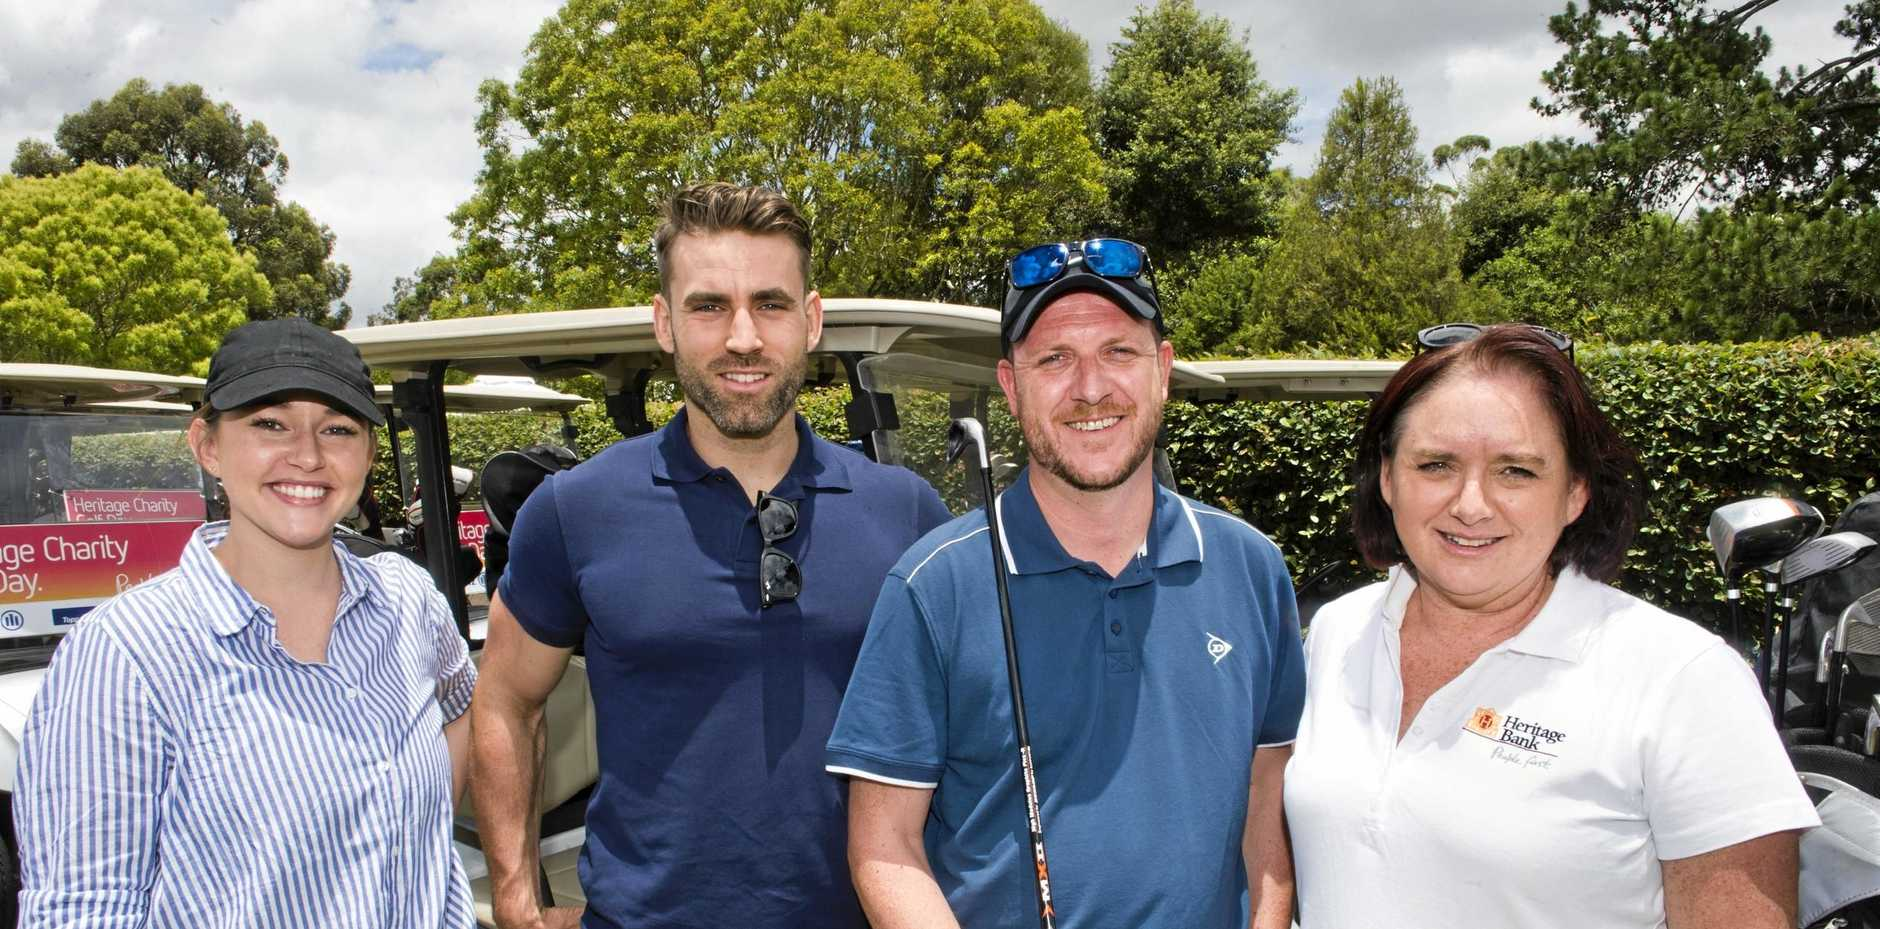 ON THE GREEN: Enjoying the Heritage Bank Charity Golf Day 2018 are (from left) Claire Overell, Nick Gregory and Andy Copeland with Heritage Banks Amanda Temperly.